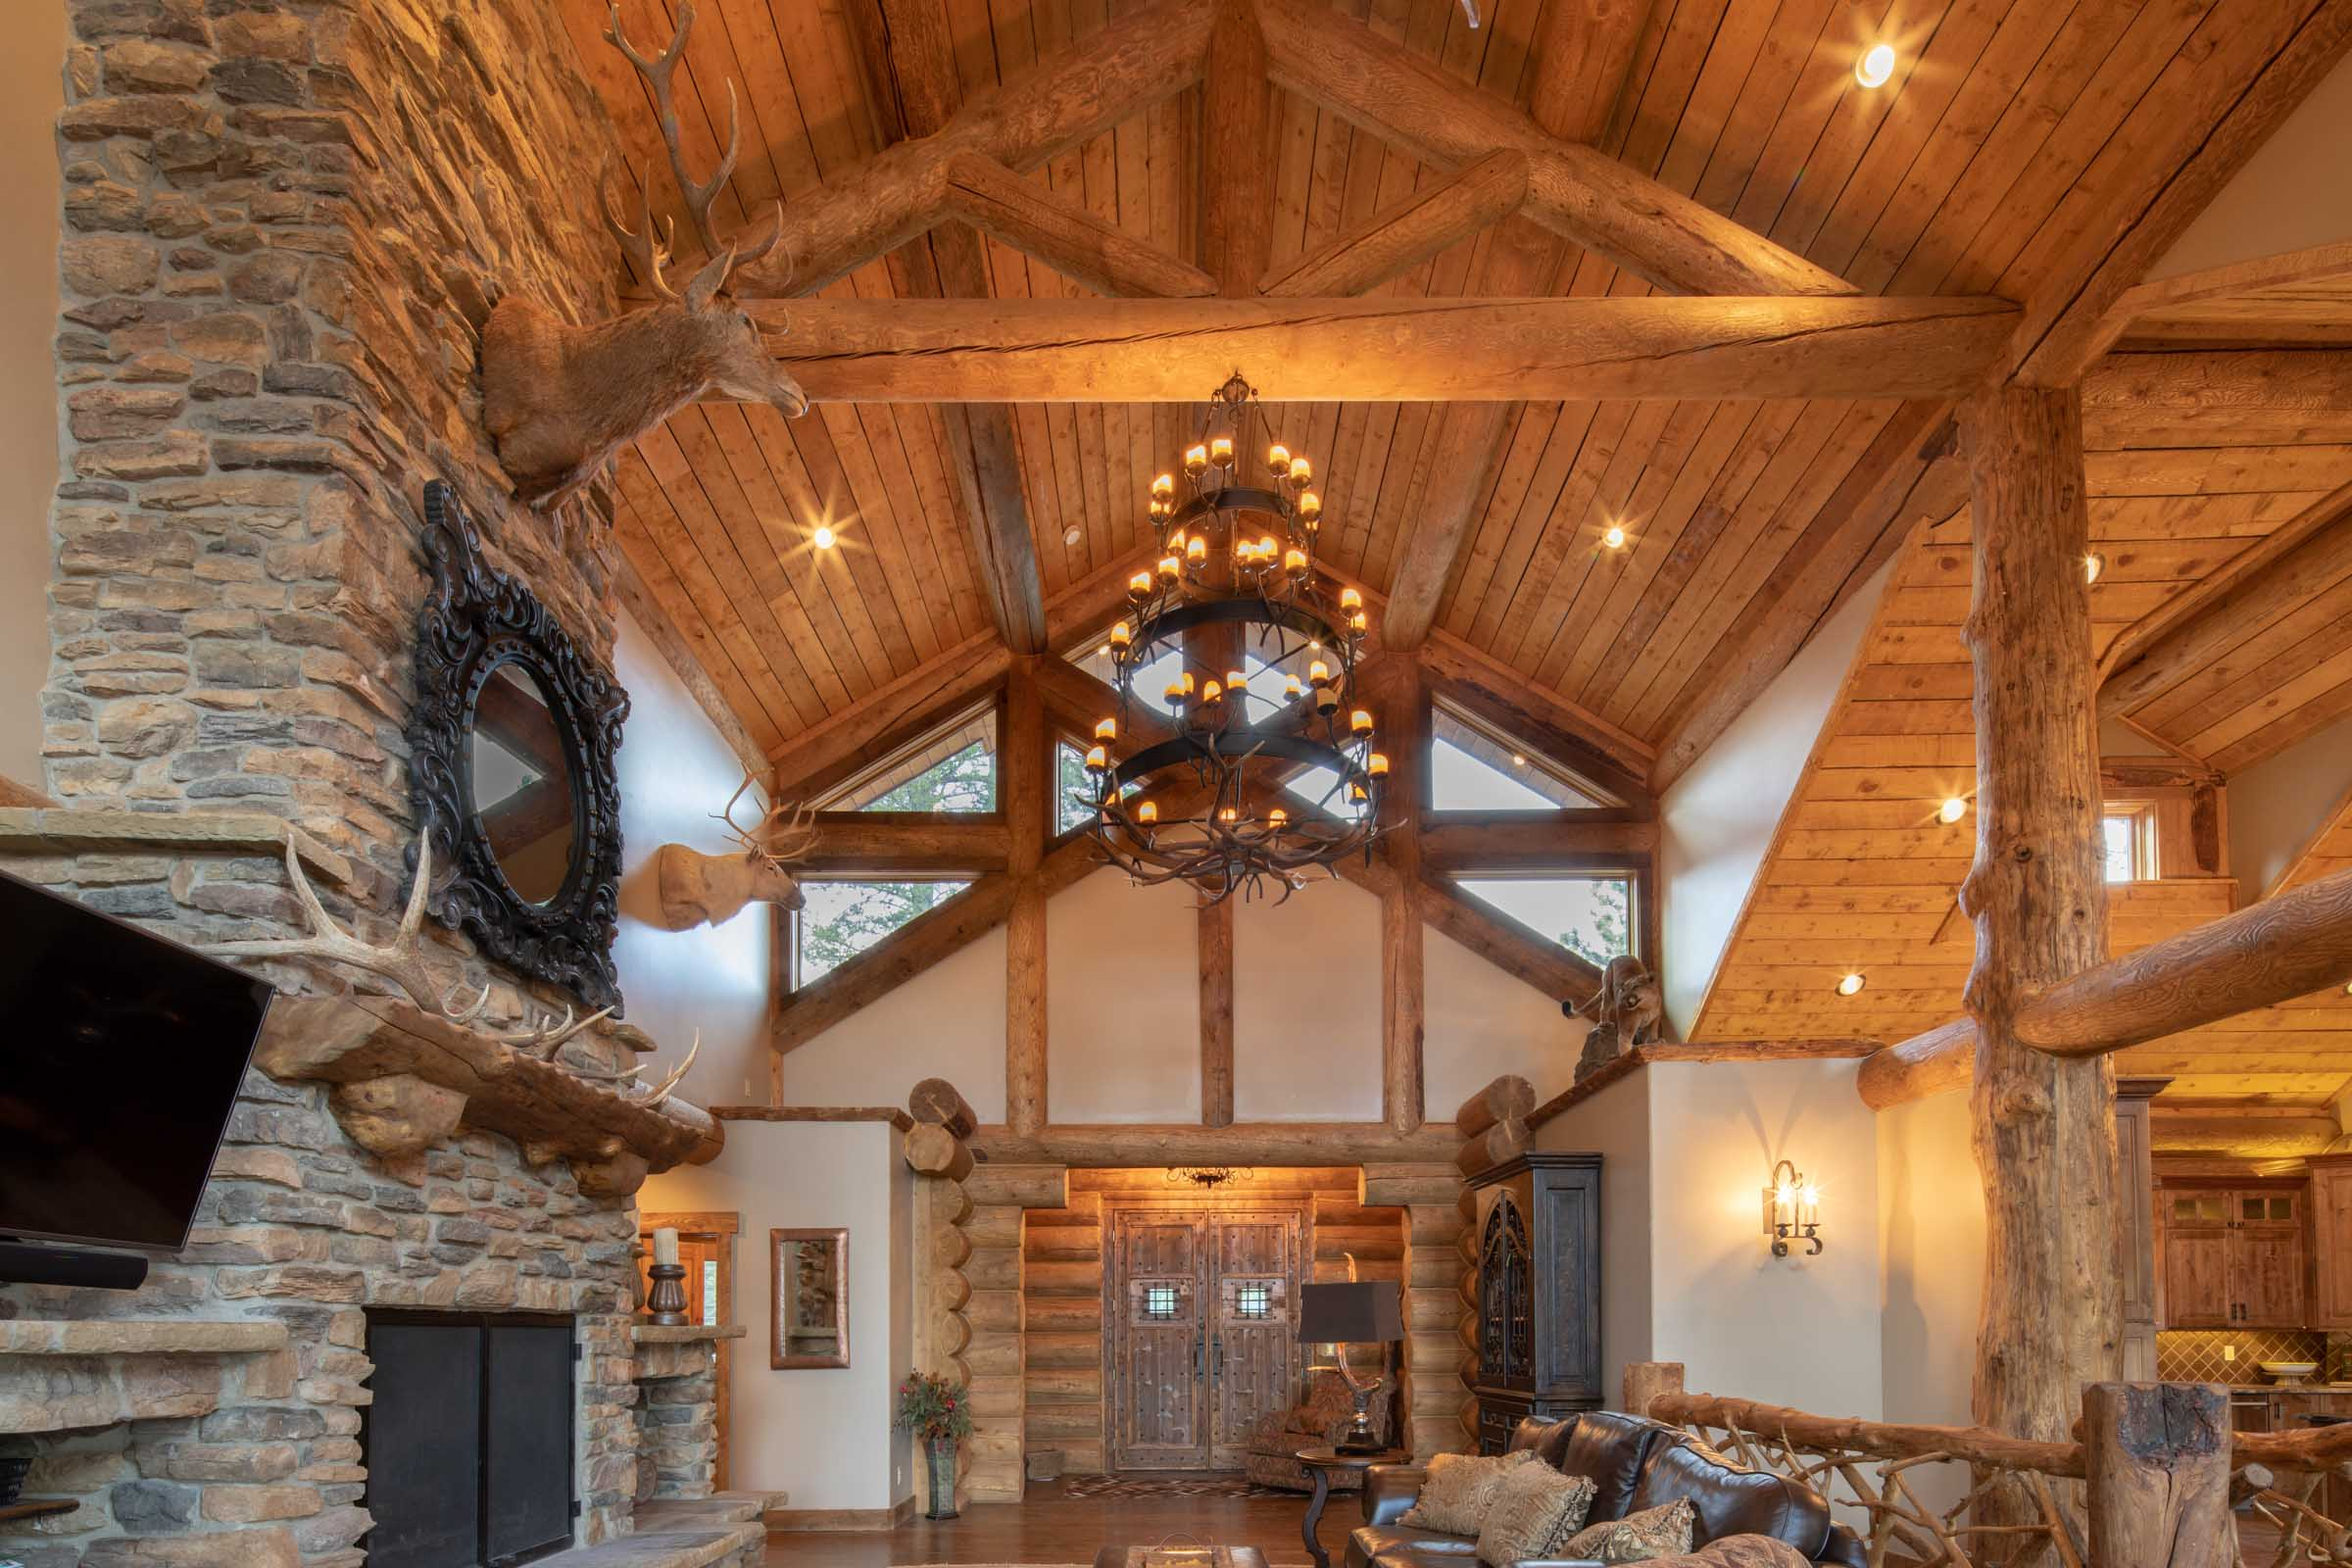 Luxury log cabin angel fire new mexico-18